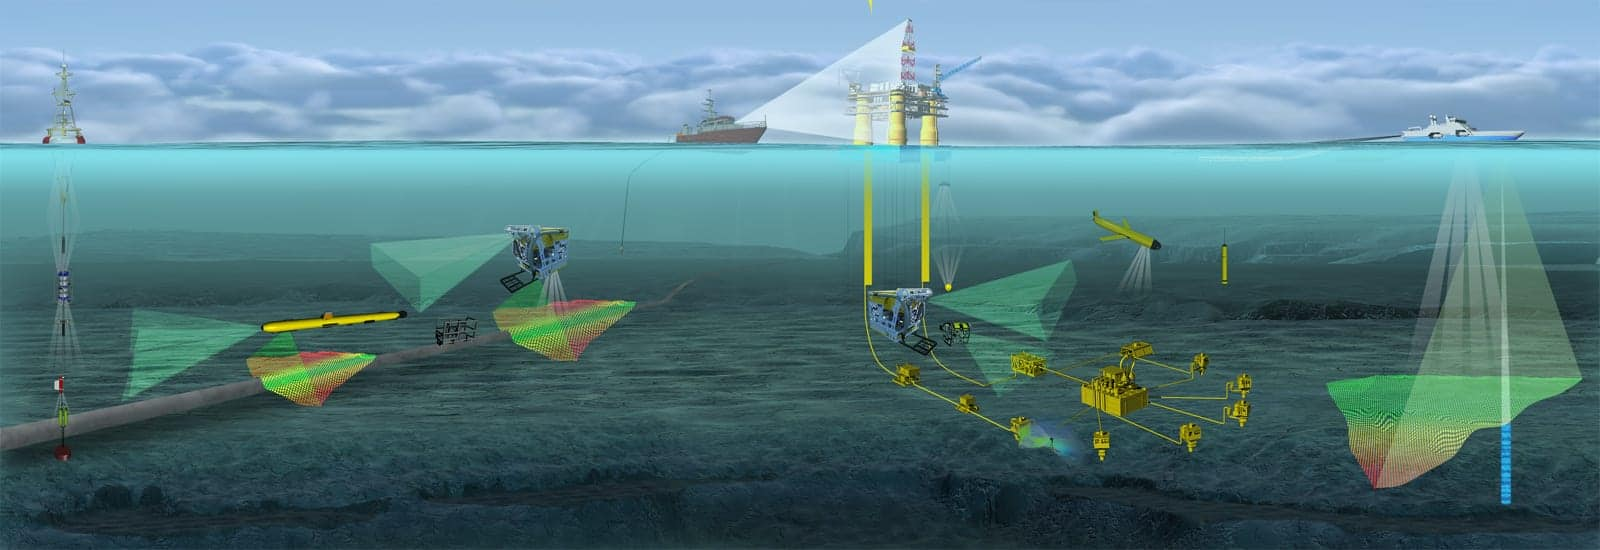 ROVs AUVs USVs for Energy il and gas applications